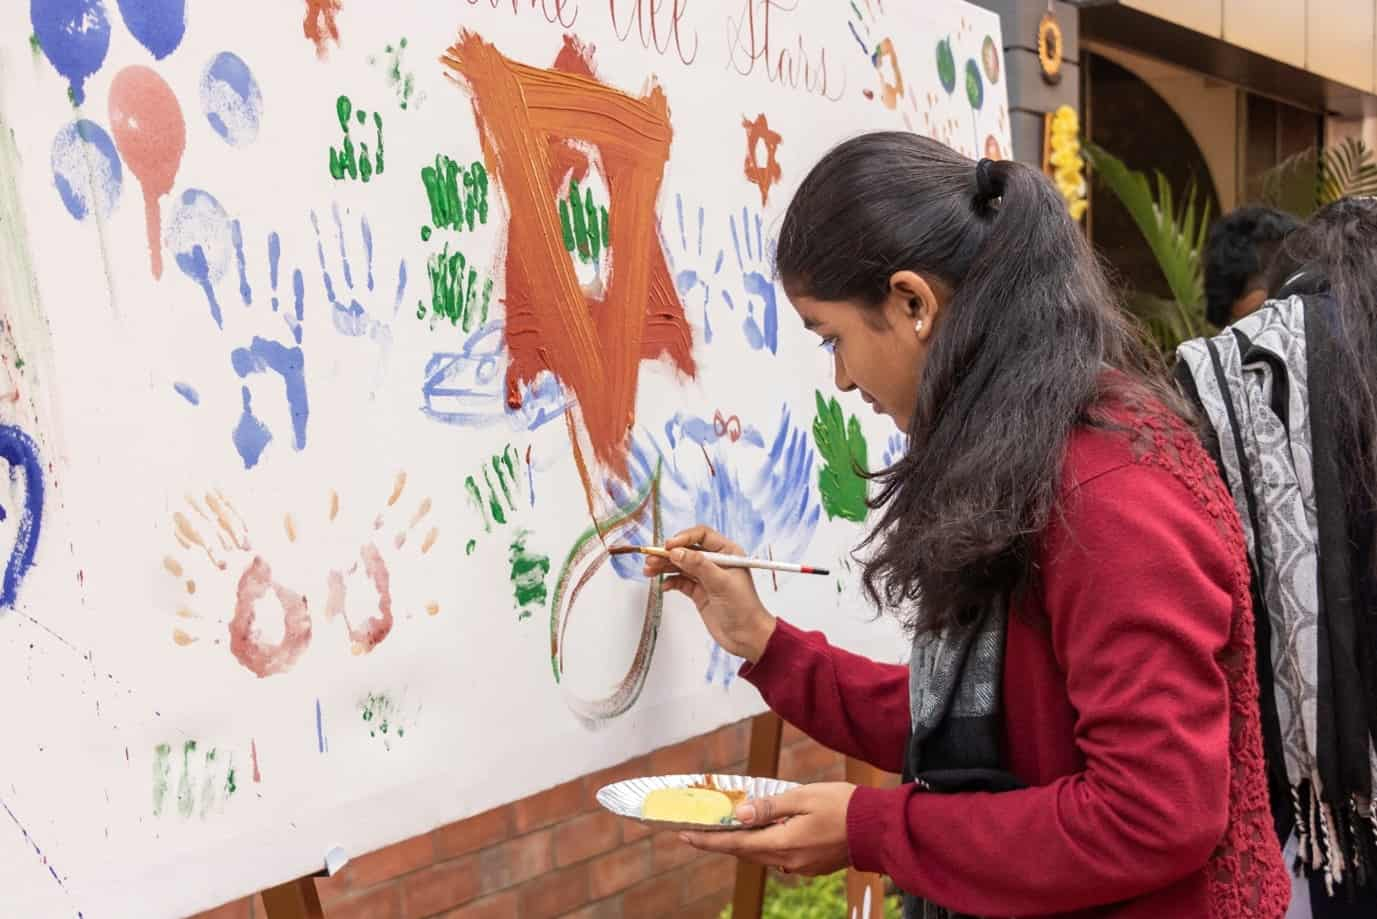 Young student of BFA college in chennai doing calligraphy and art work with color palette and brush on a board